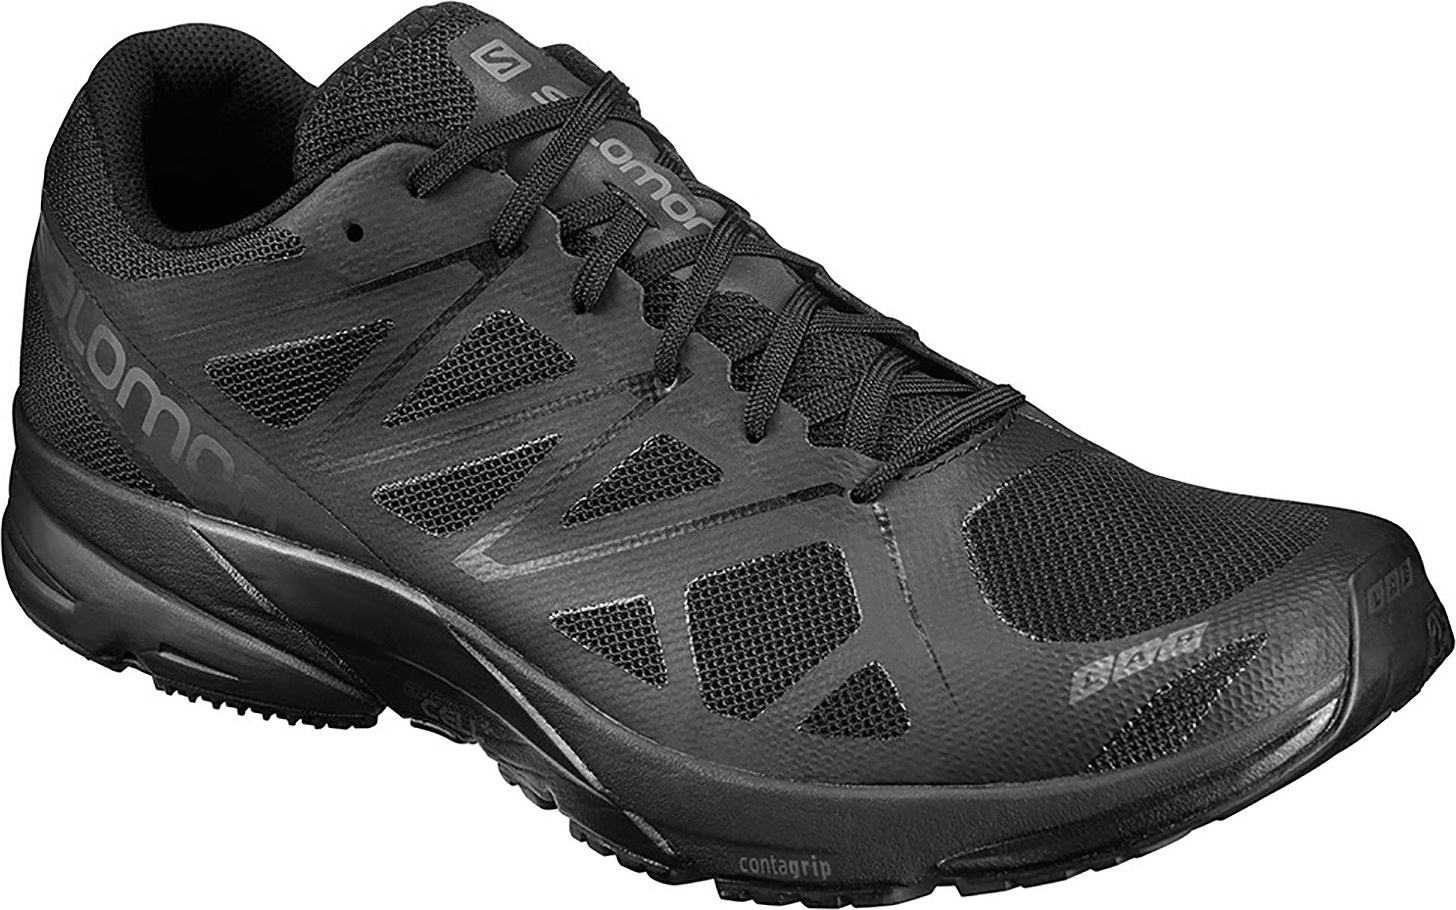 Discover the Limited Edition Salomon SLAB Black Edition